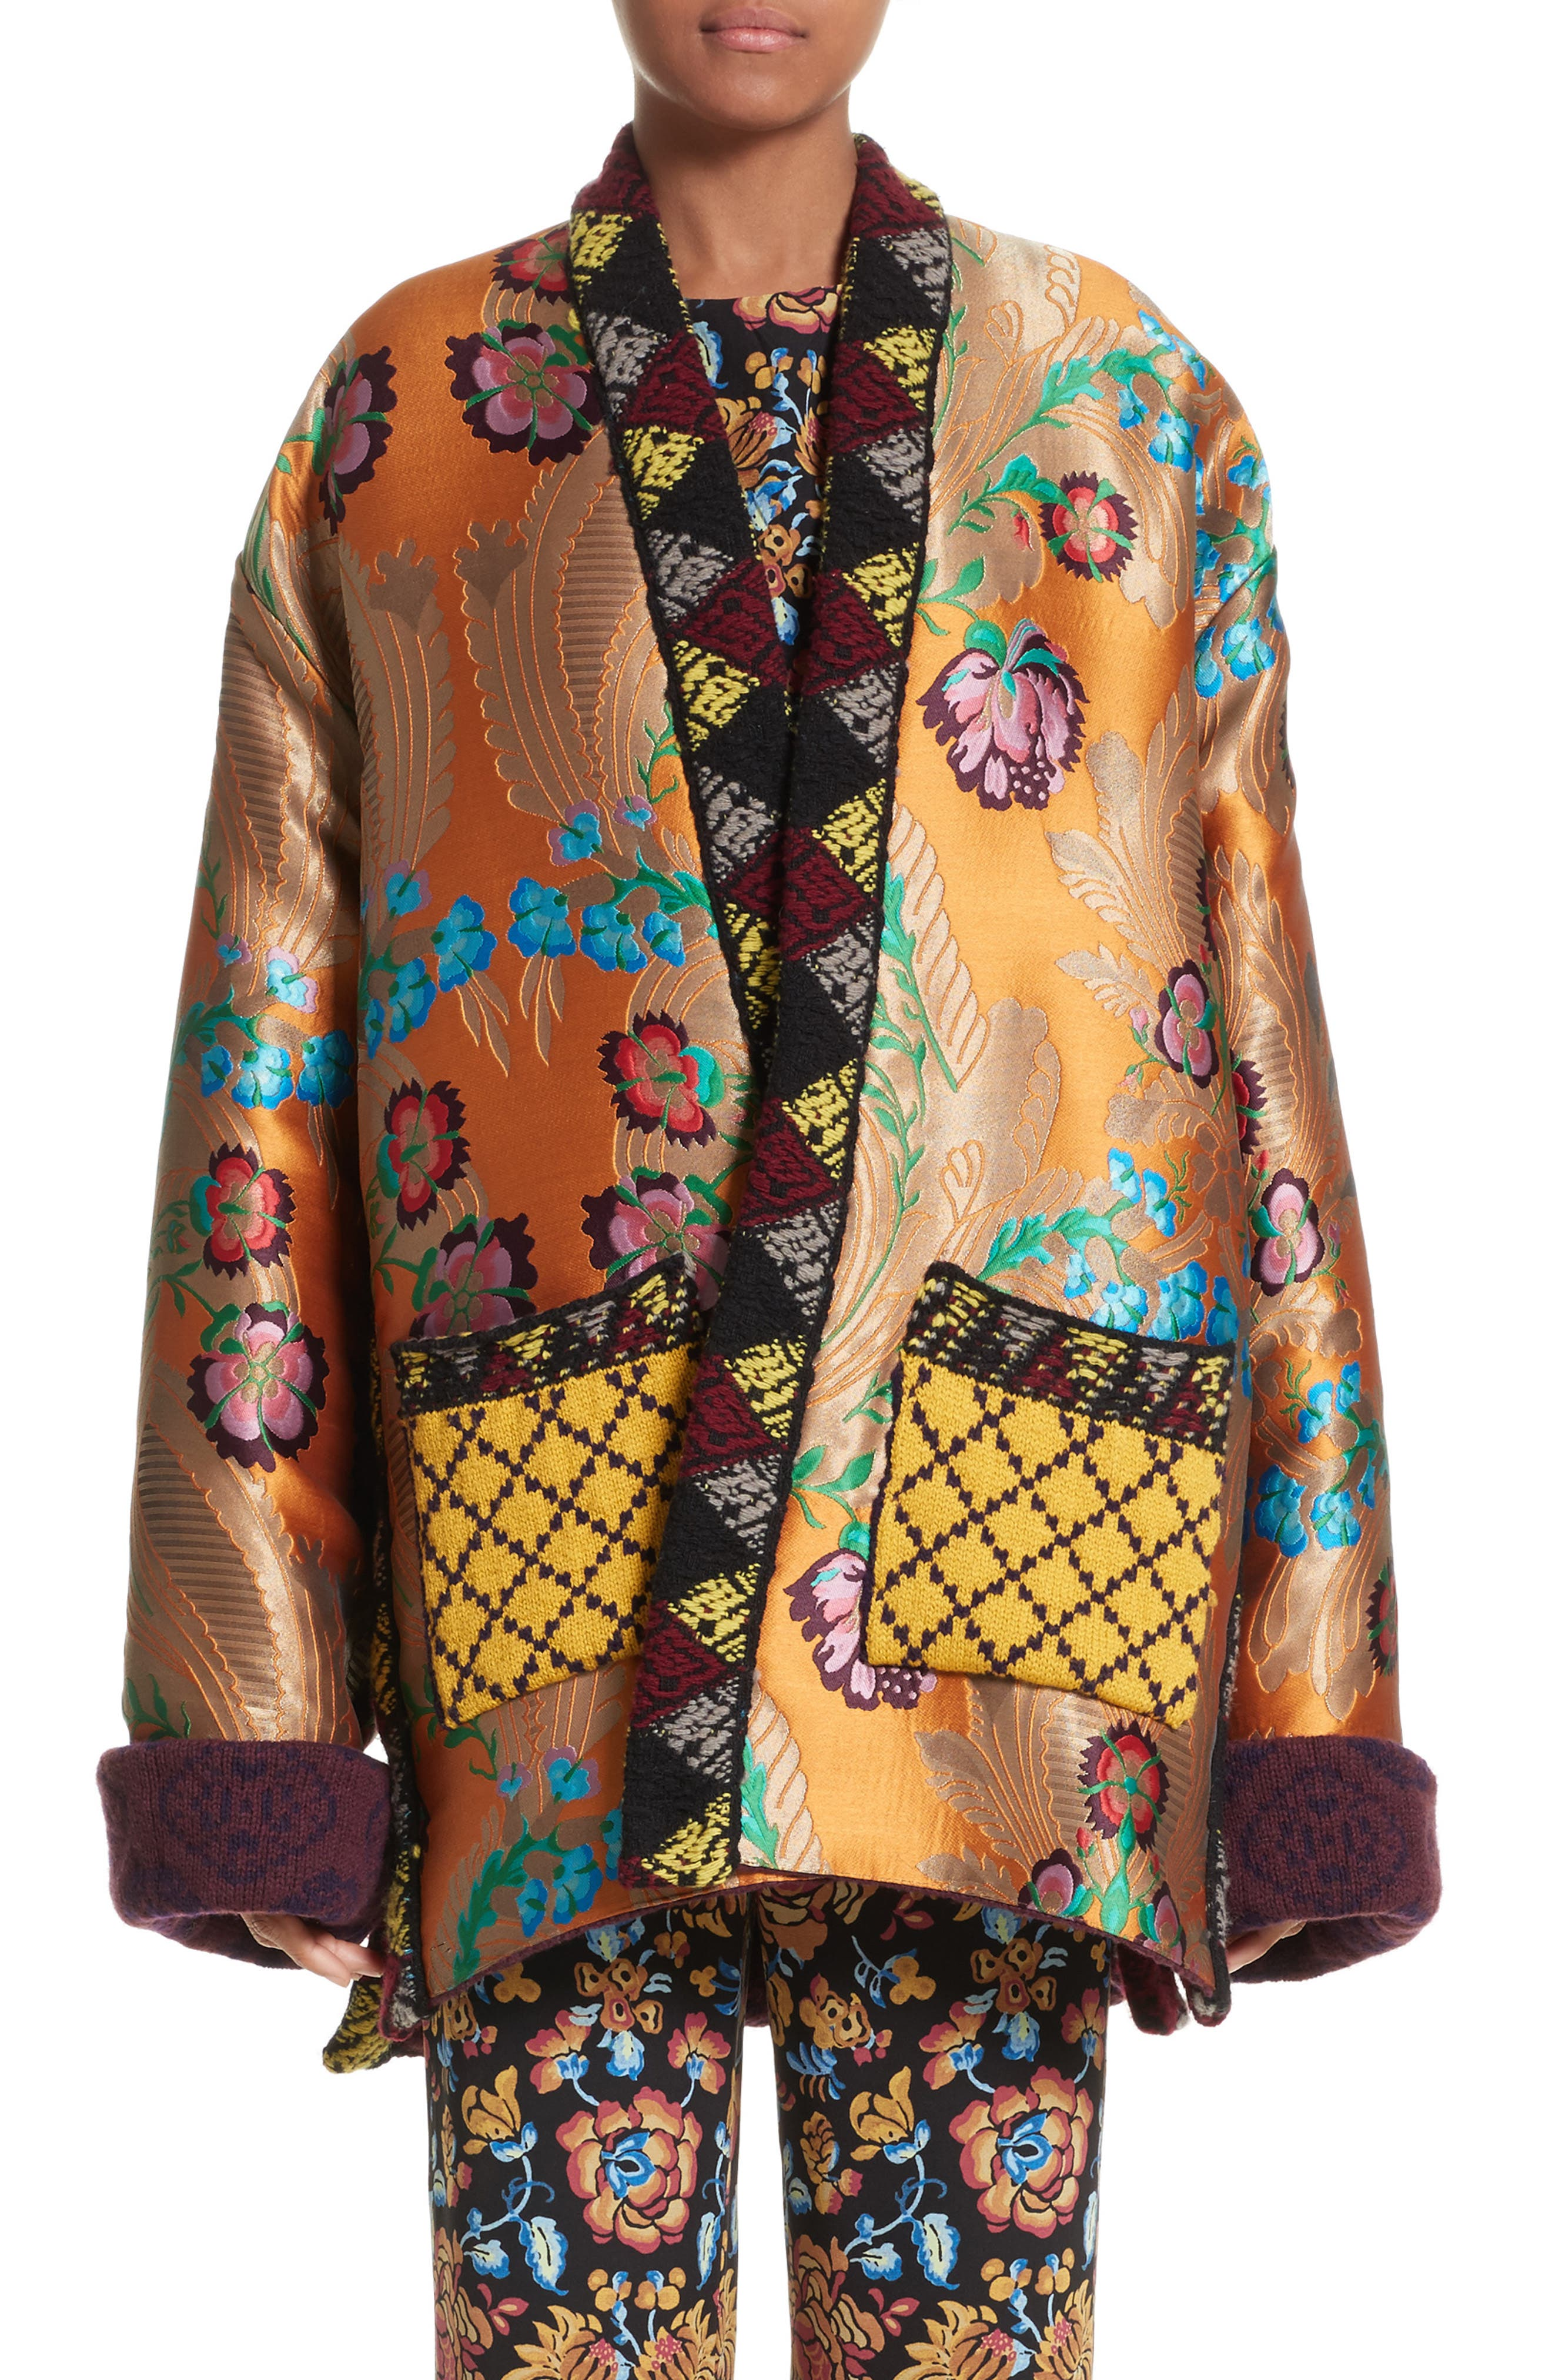 Etro Reversible Knit & Jacquard Wool Blend Jacket